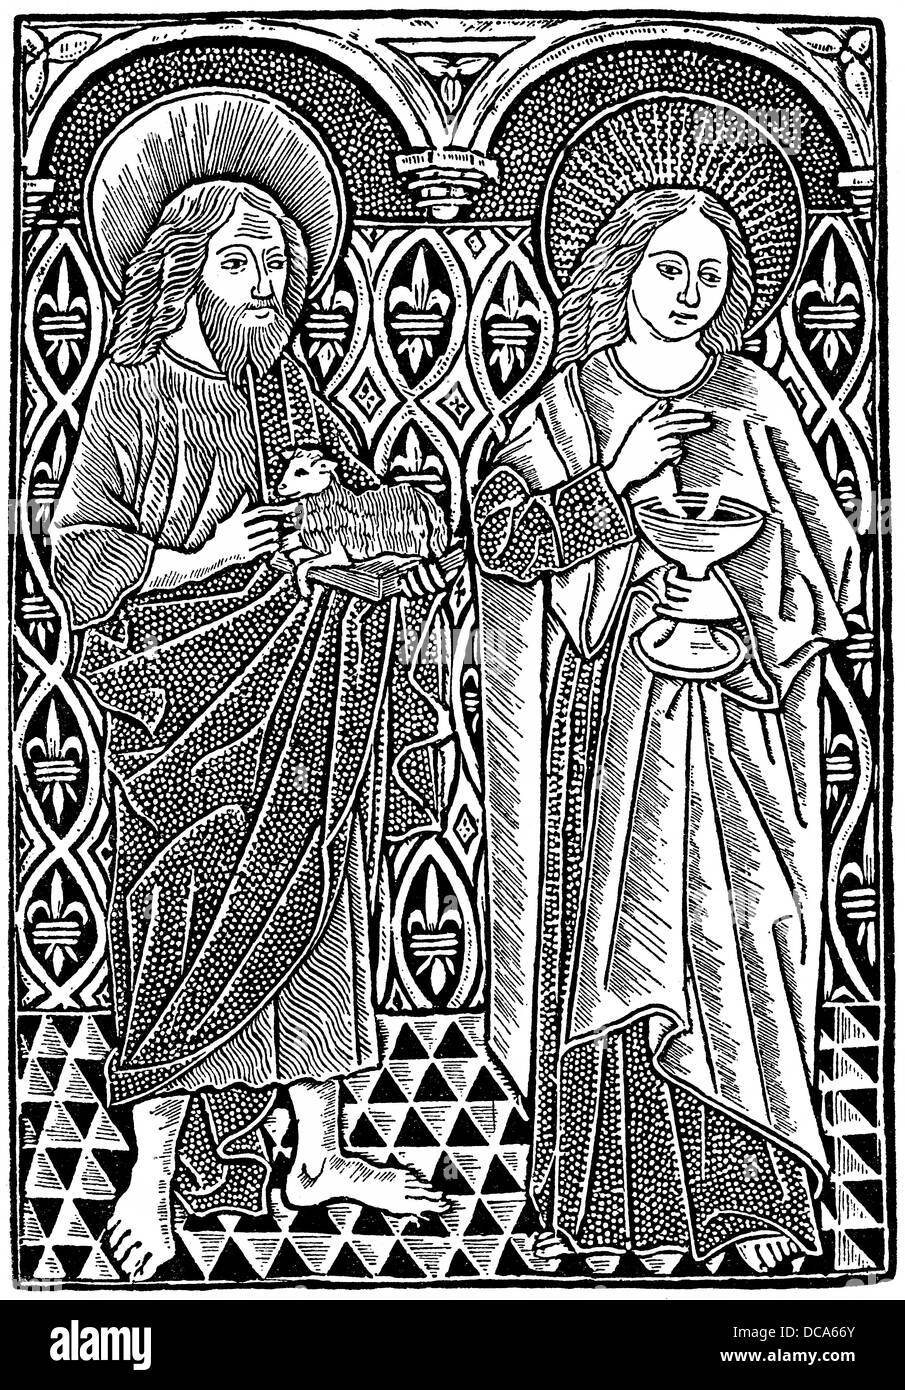 Historical illustration from the 19th Century, after a representation from 1450, John the Baptist and John the Evangelist - Stock Image